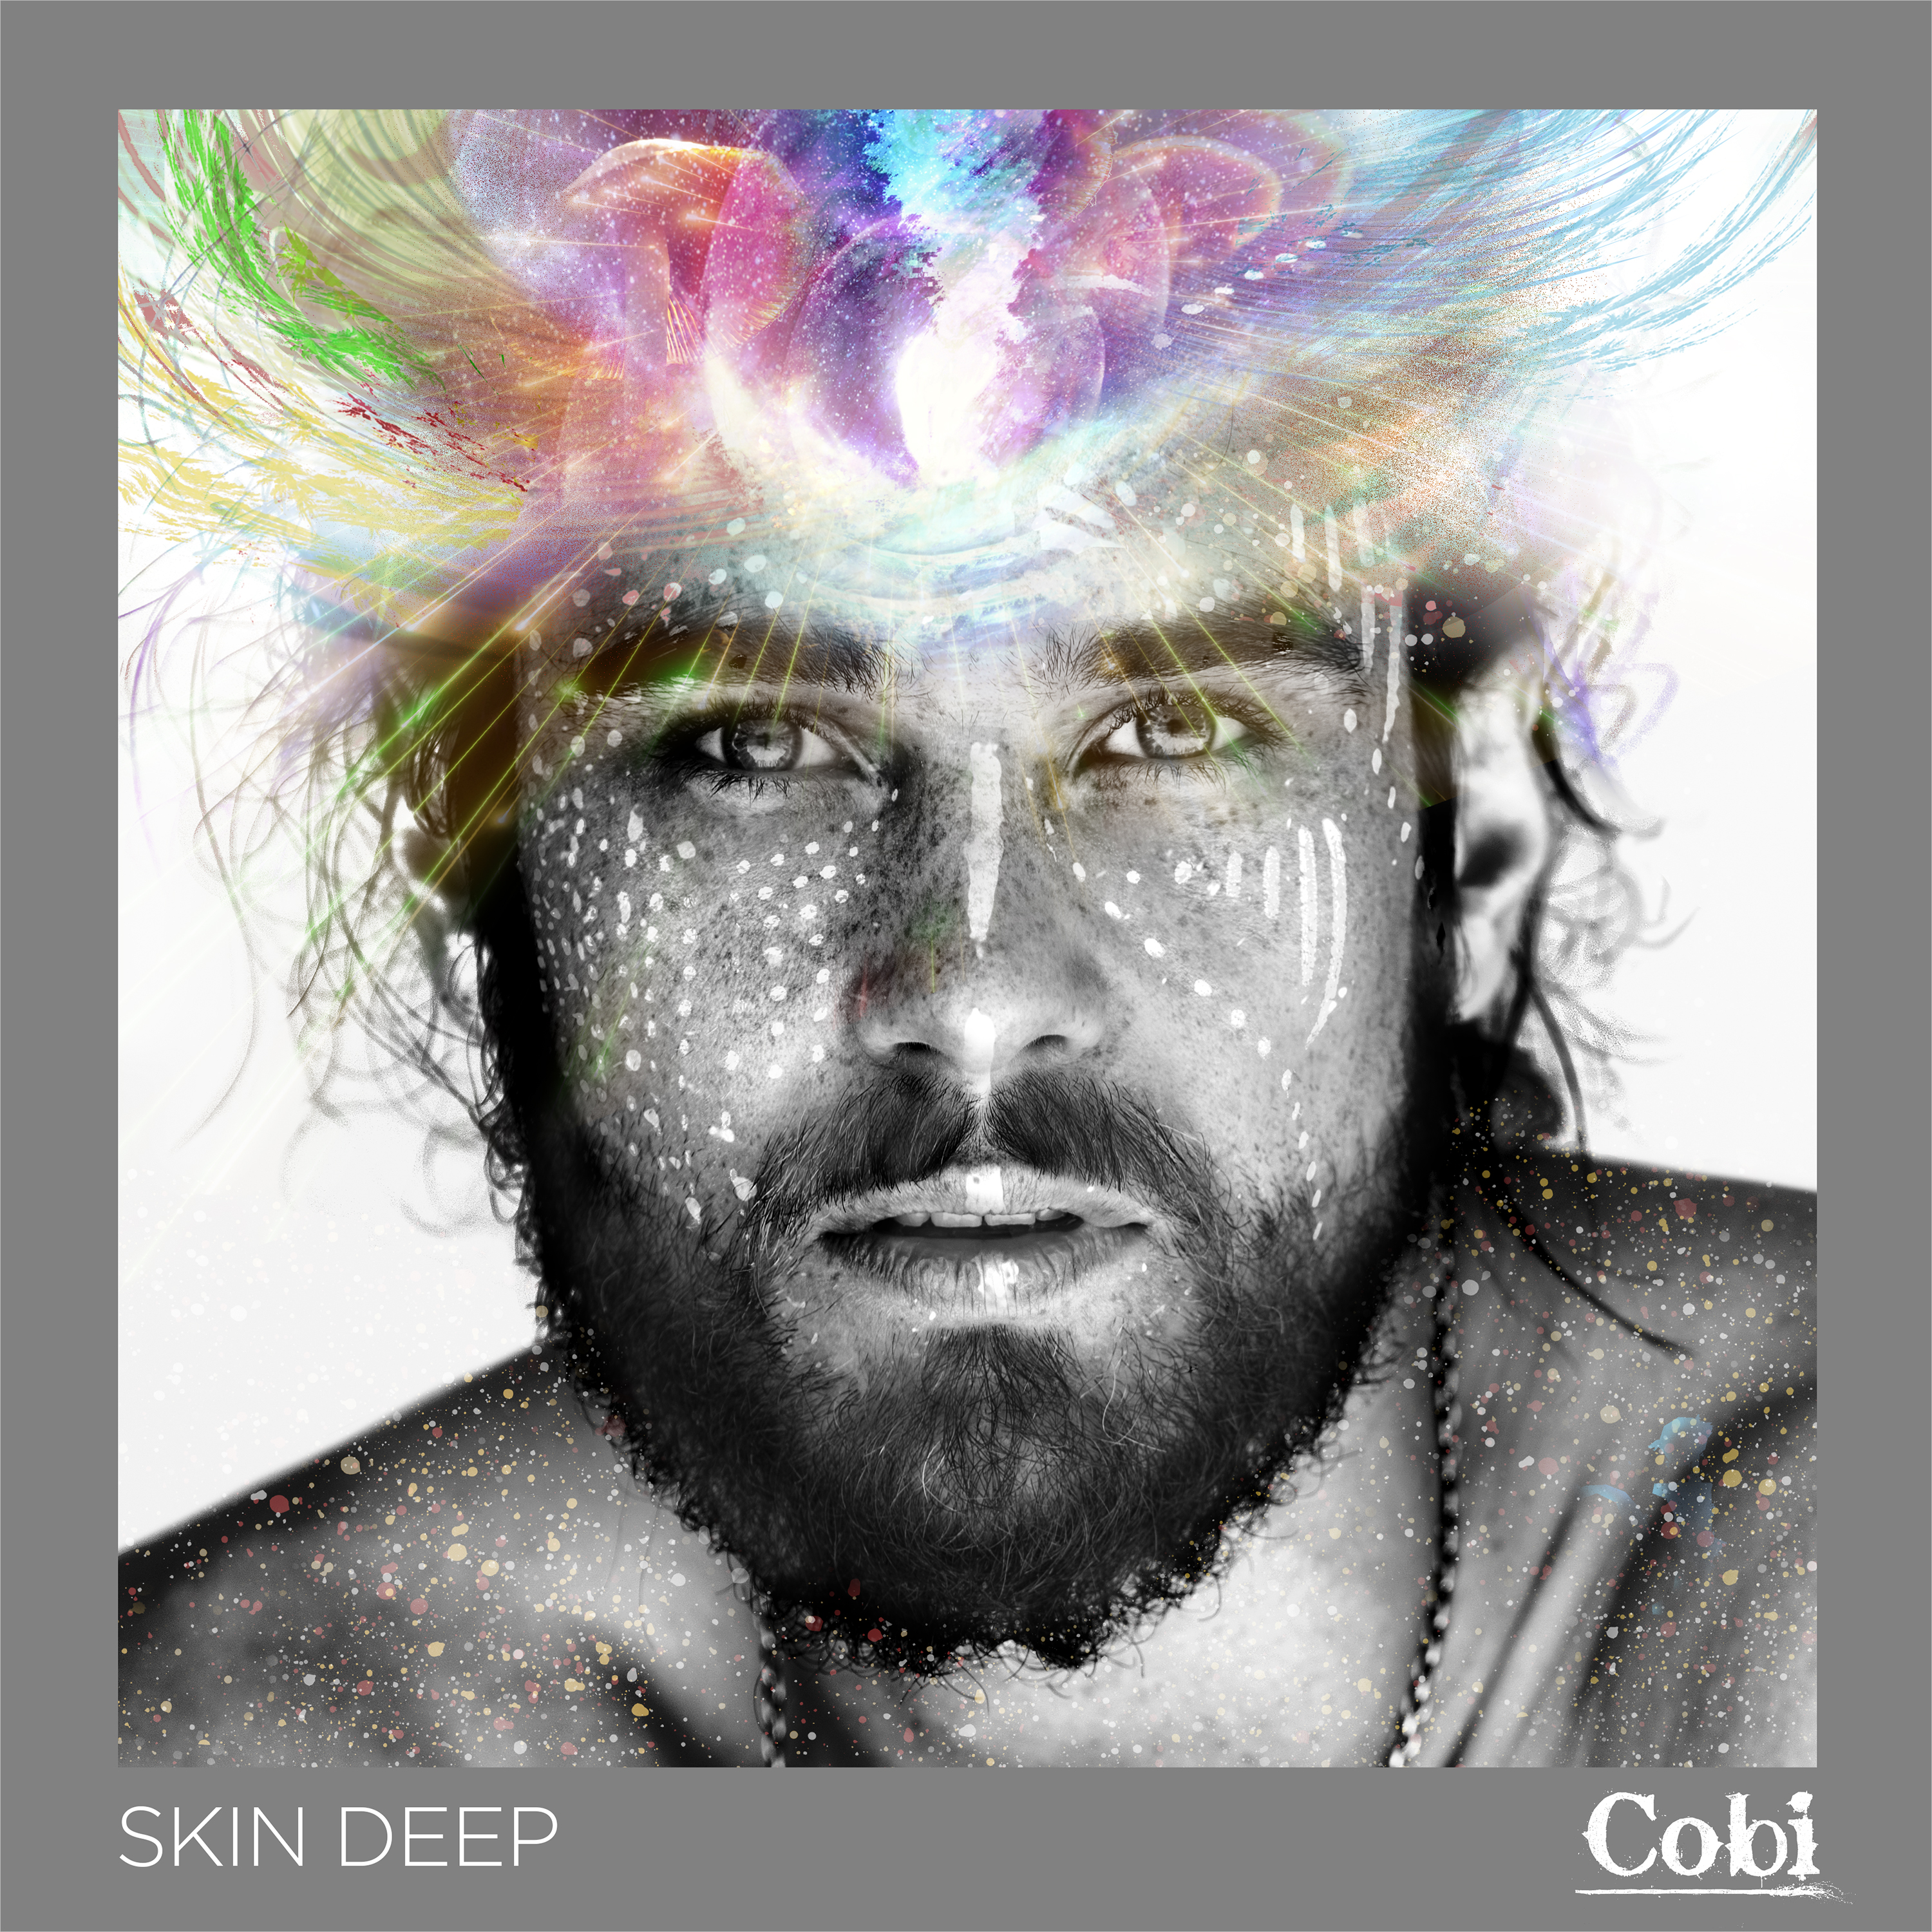 Skin Deep Out Now